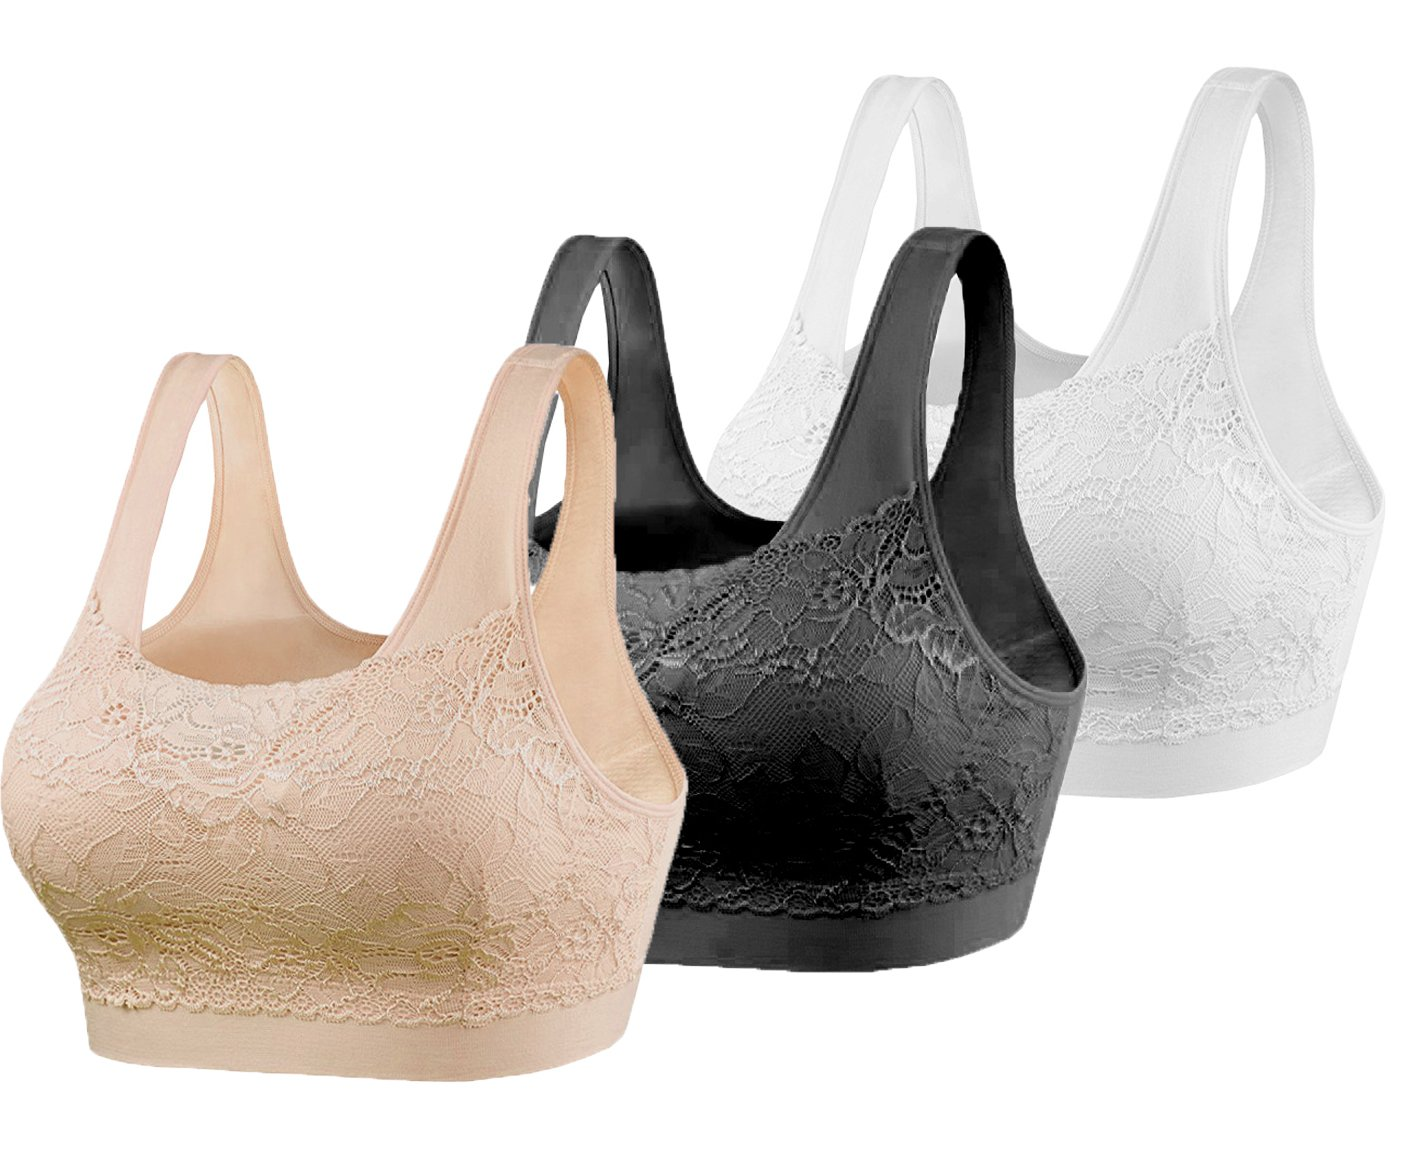 Cabales KINYAOYAO Women's 3-Pack Lace Cover Sports Bra with Removable Pads,Lace Style-1,XXX-Large by Cabales (Image #1)